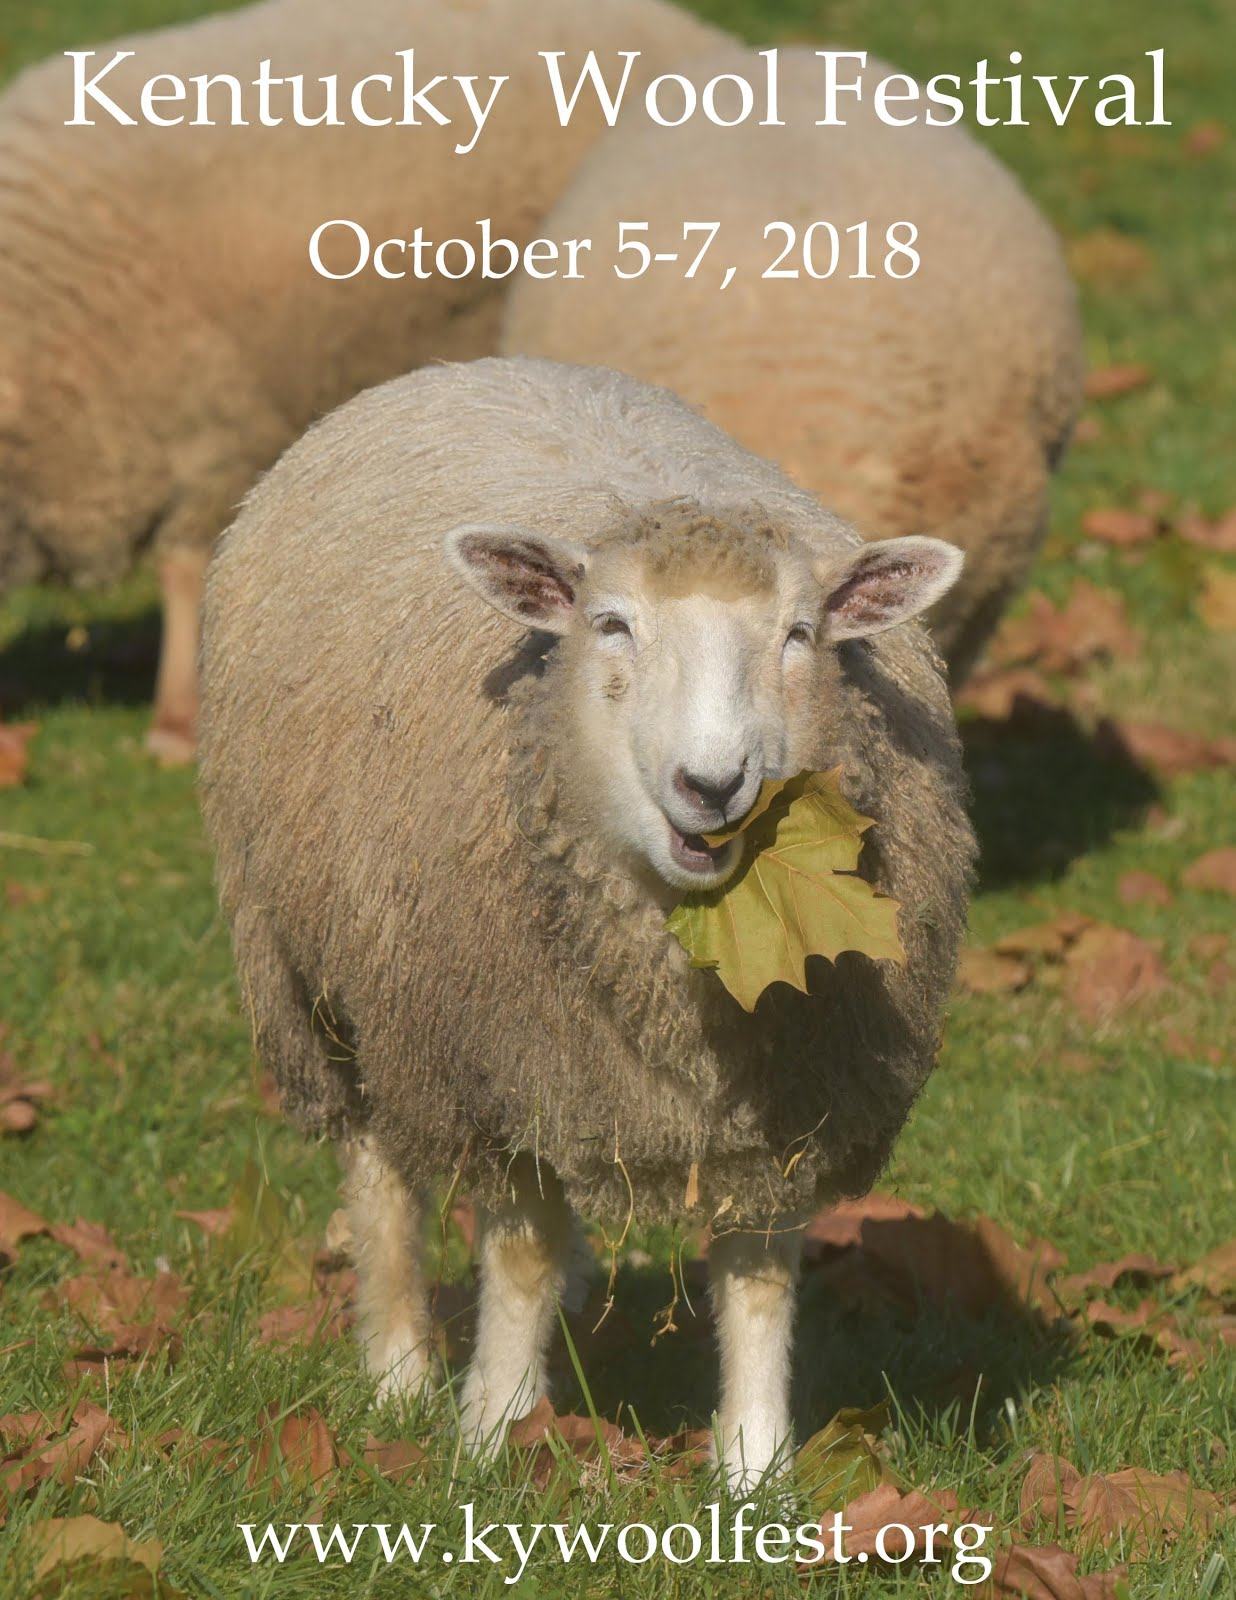 The Kentucky Wool Festival